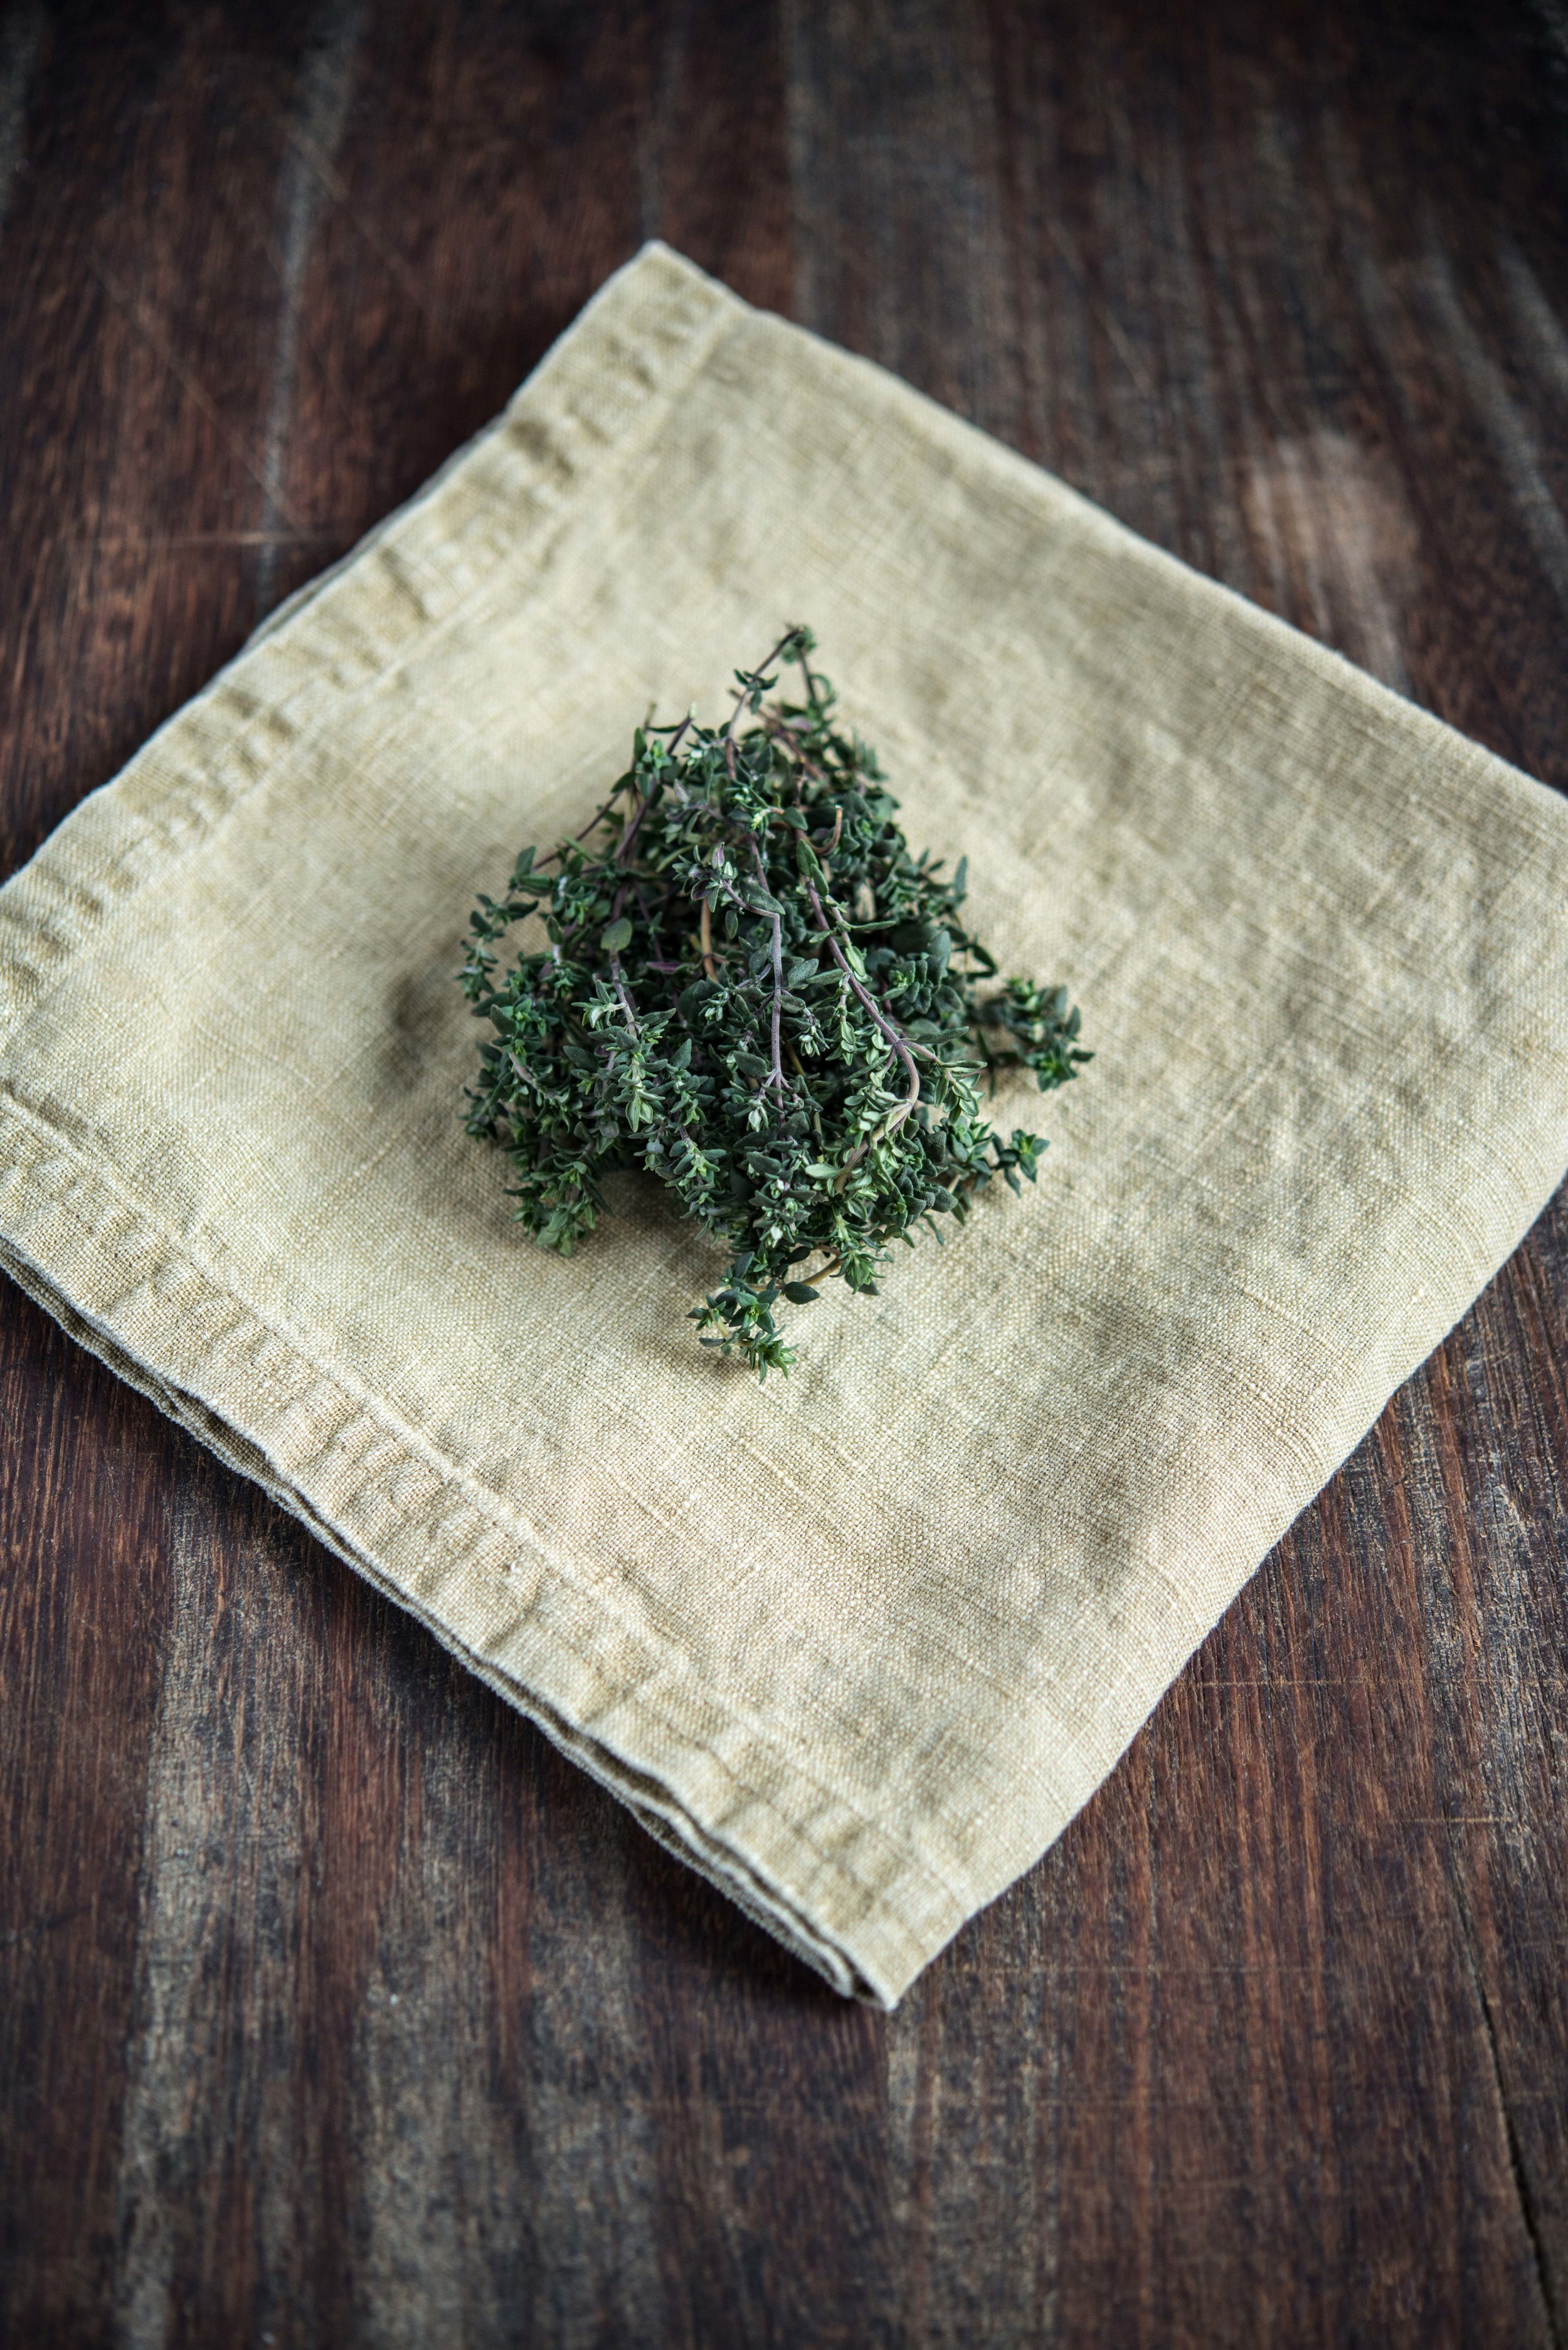 Take some time out for thyme.